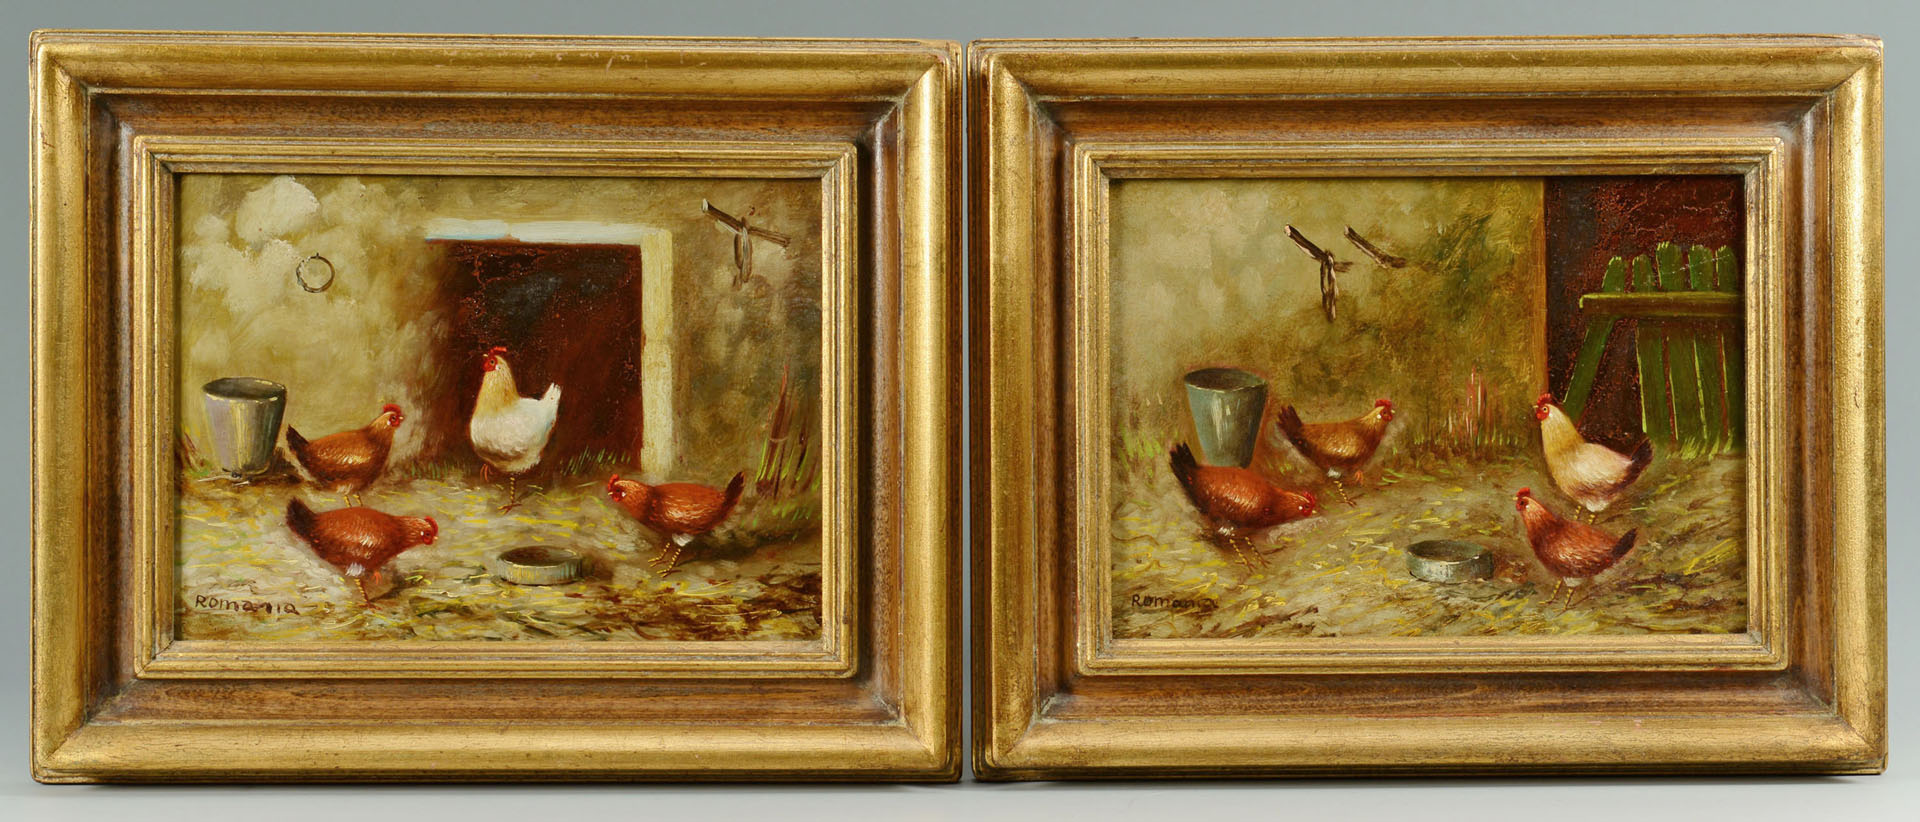 Pair of Chicken paintings by G. Romania